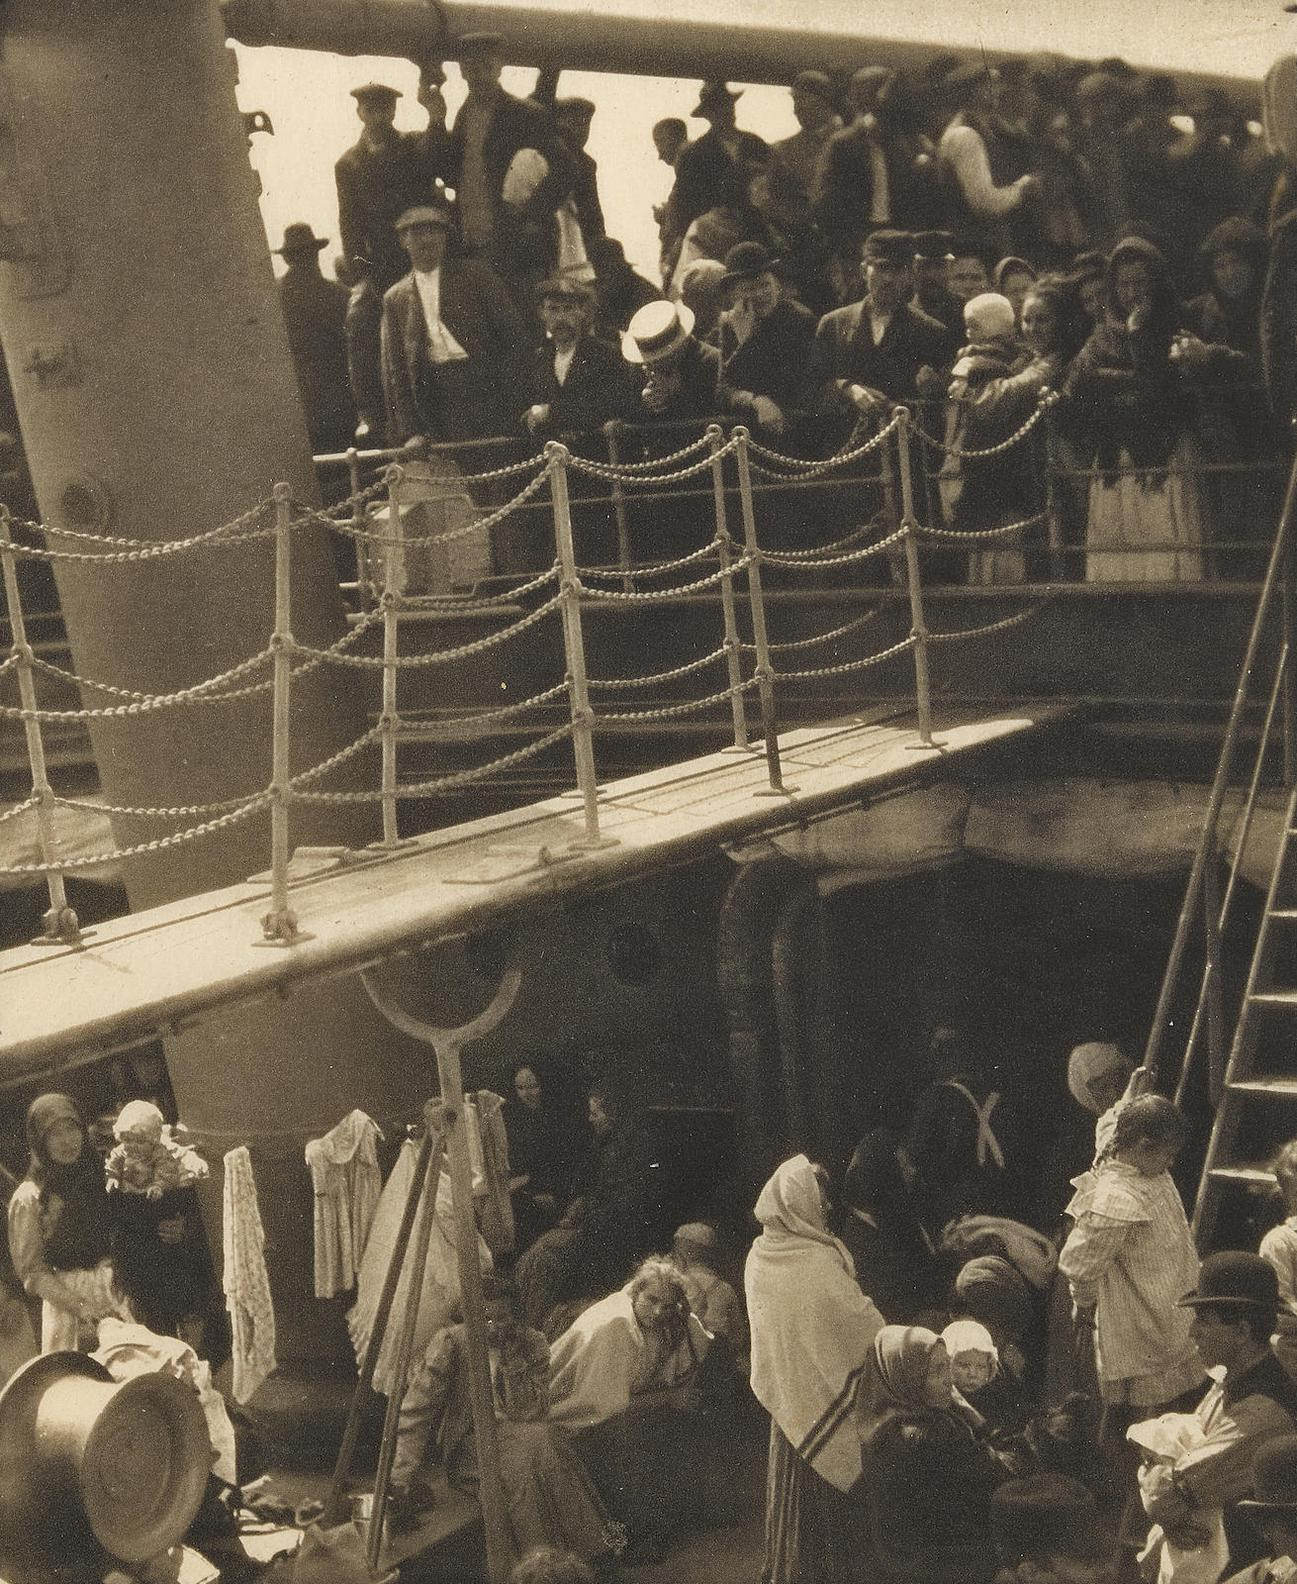 Alfred Stieglitz-The Steerage; And The City Across The River, 1907 And 1910 (1911)-1910